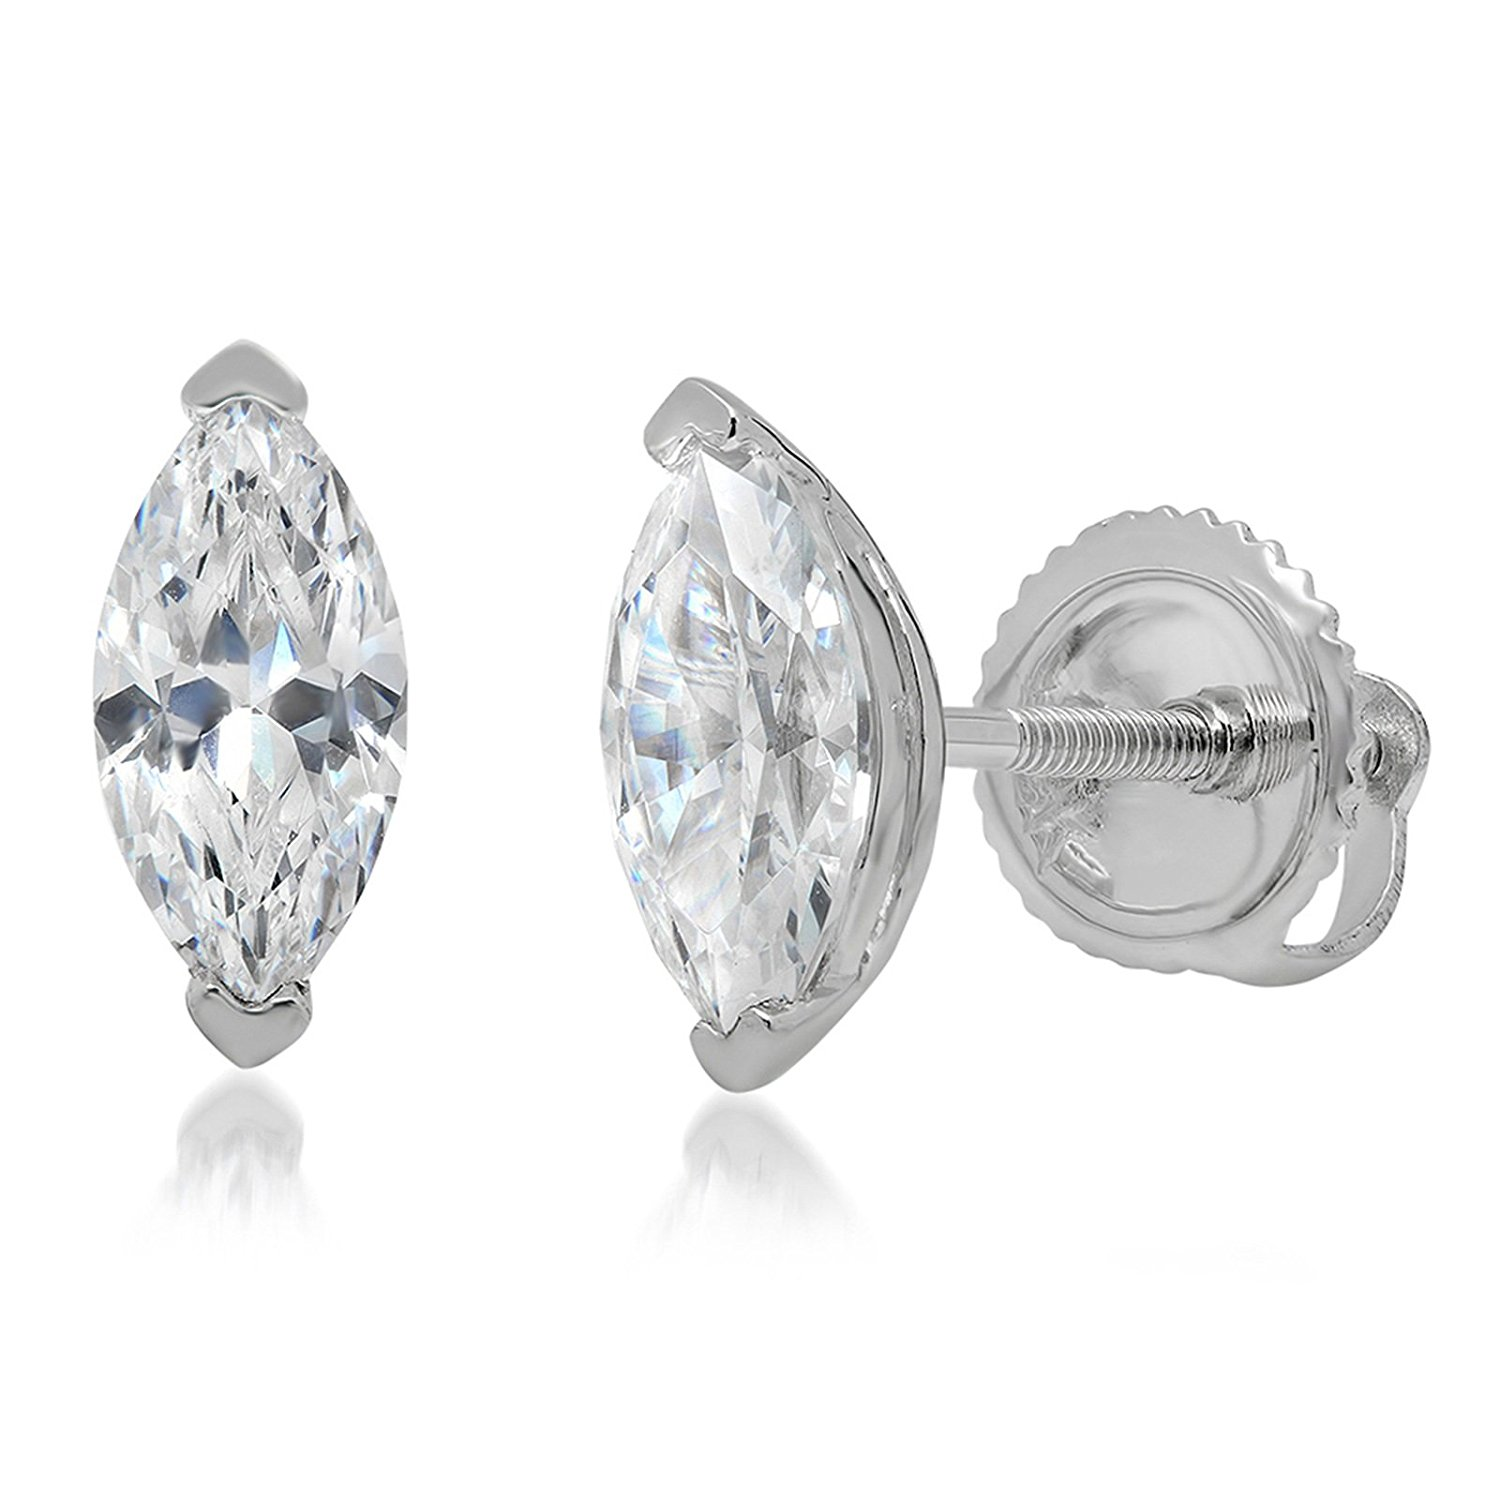 Clara Pucci 0.90 CT Brillaint Marquise Cut Solitaire Stud Earrings14k White Gold Screw Back